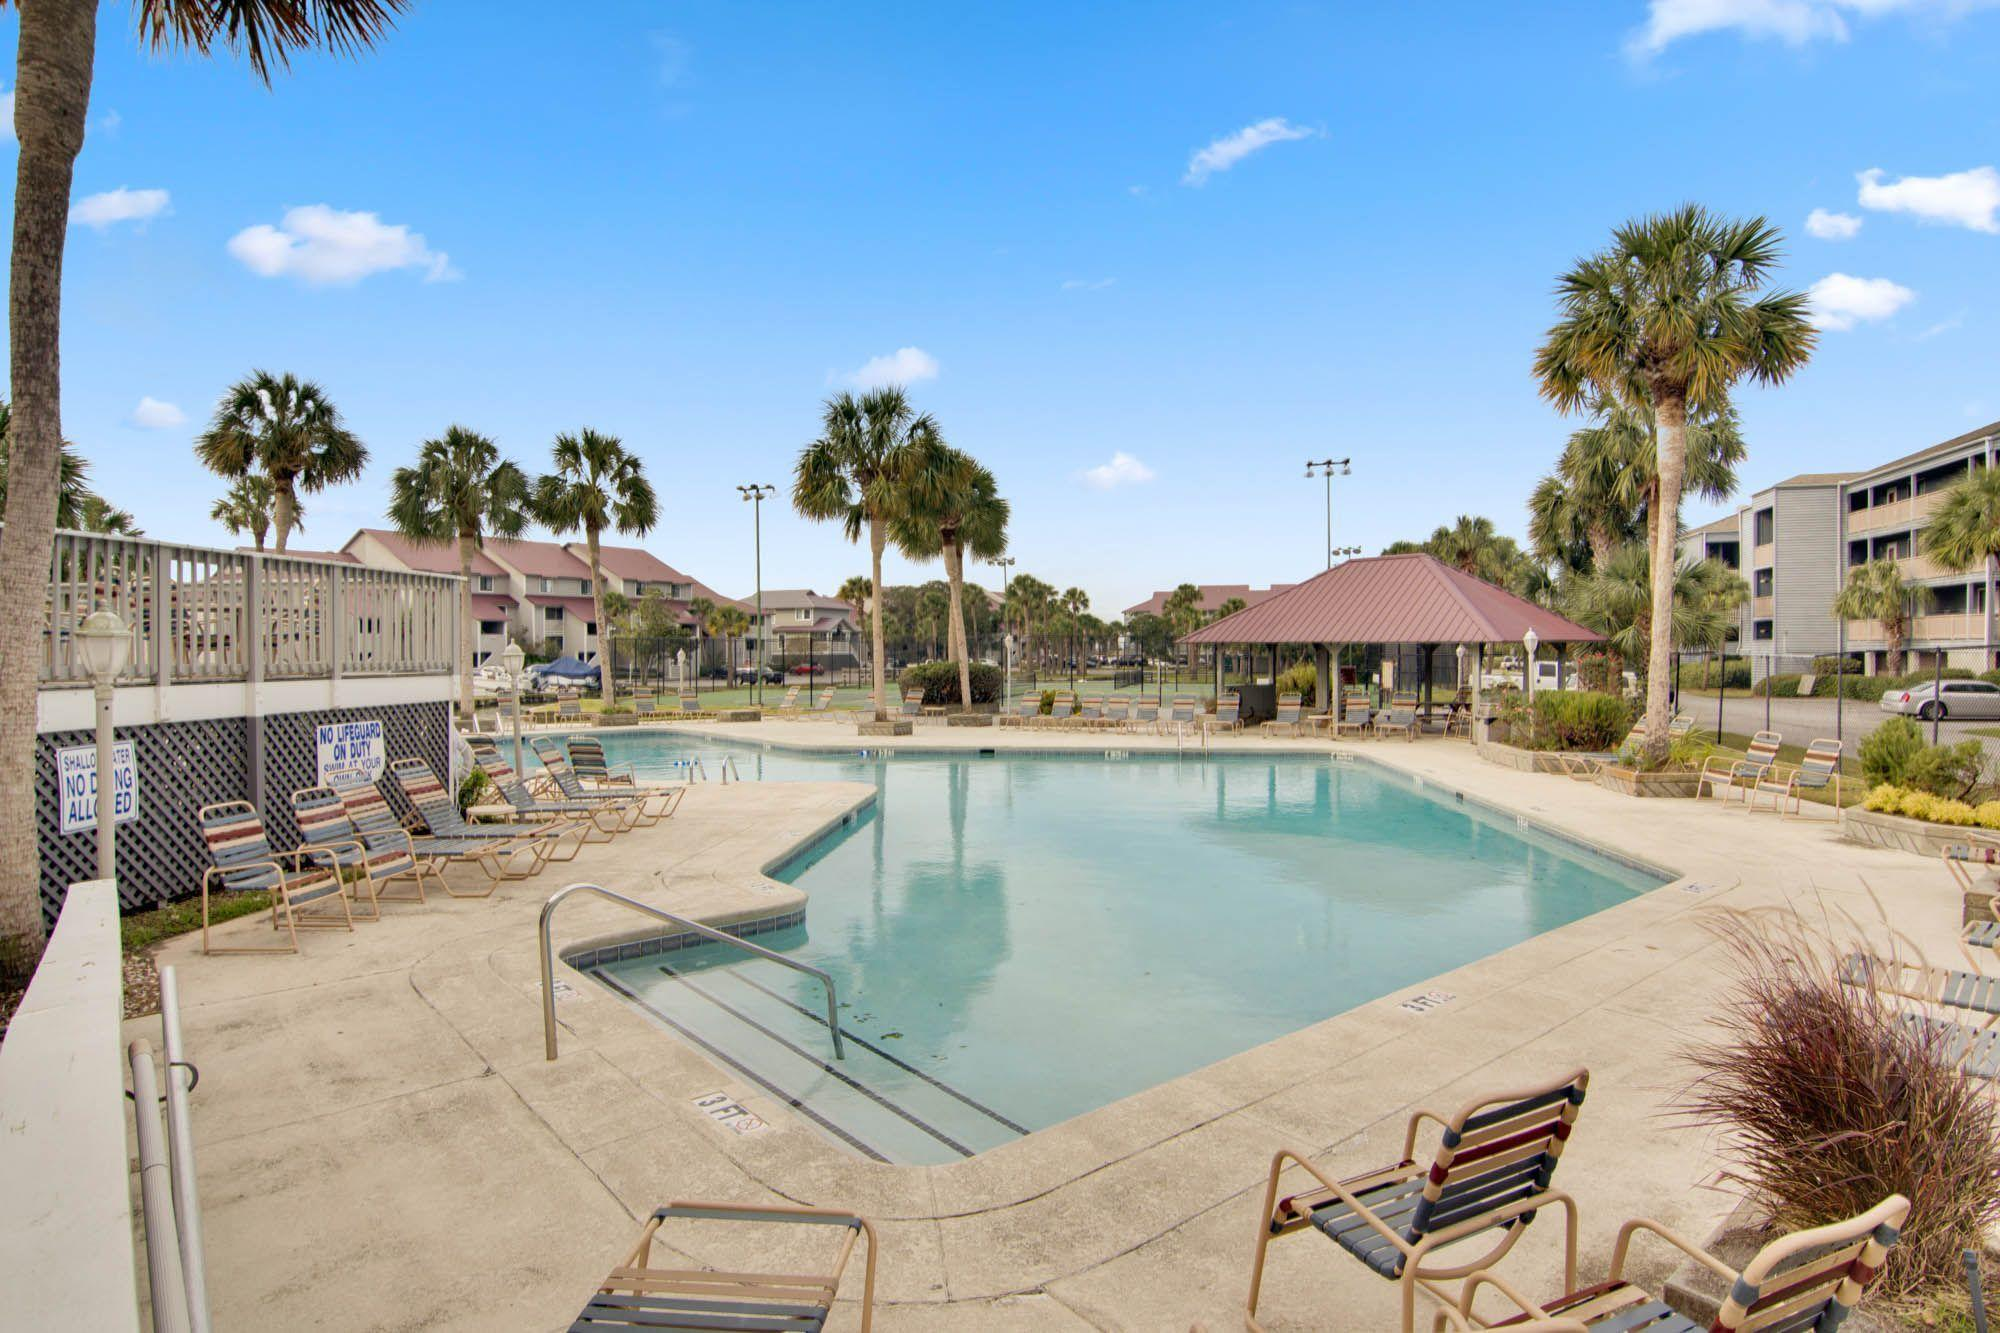 Mariners Cay Homes For Sale - 51 Mariners Cay, Folly Beach, SC - 28